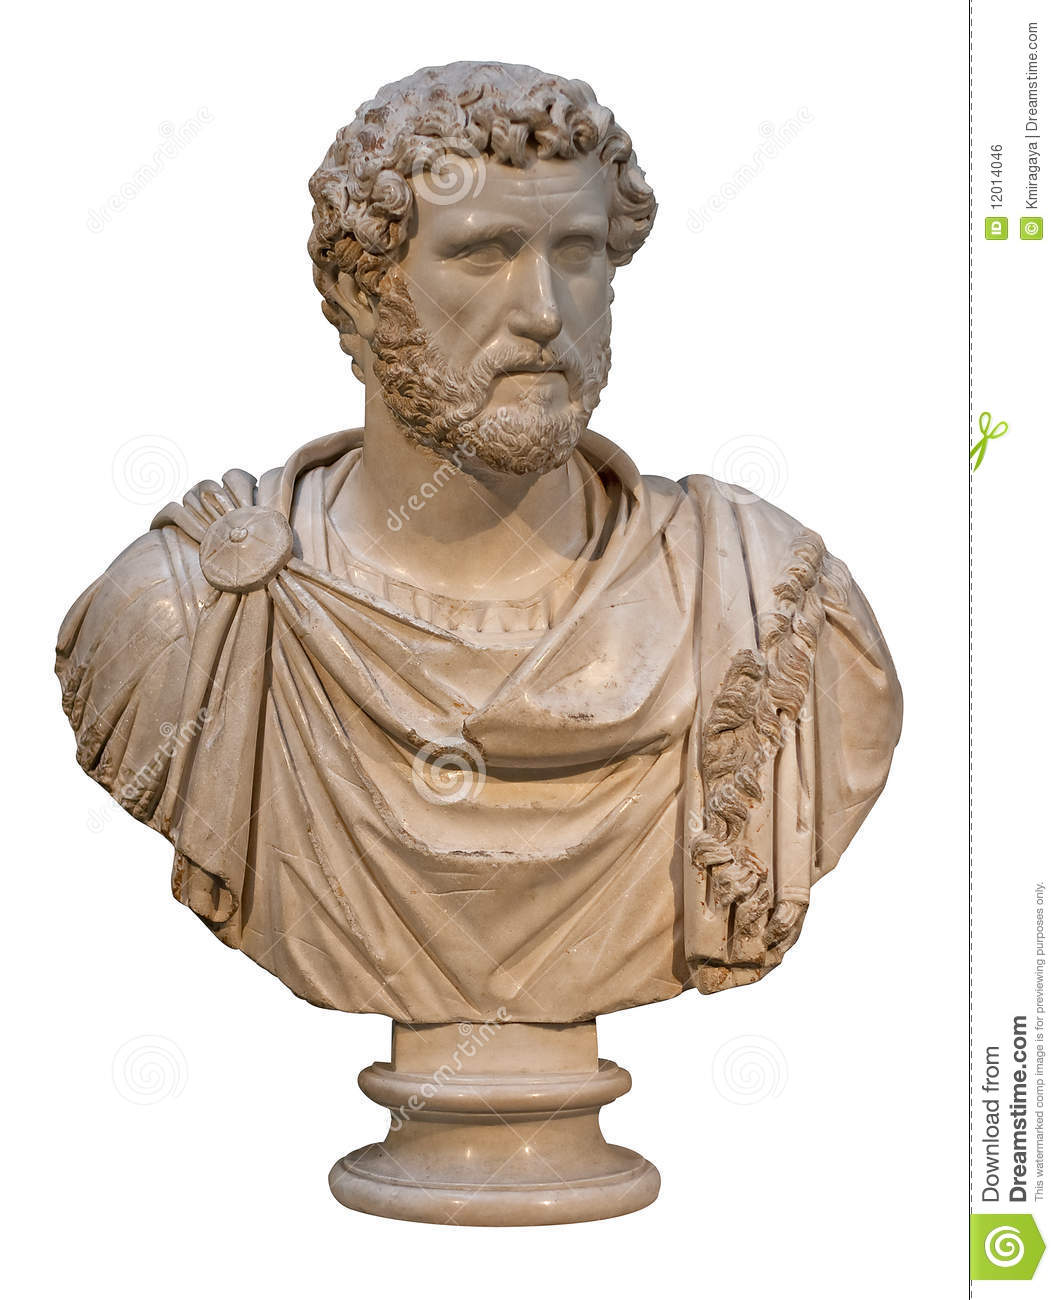 Marble Bust Of The Roman Emperor Antoninus Pius Royalty Free Stock ...